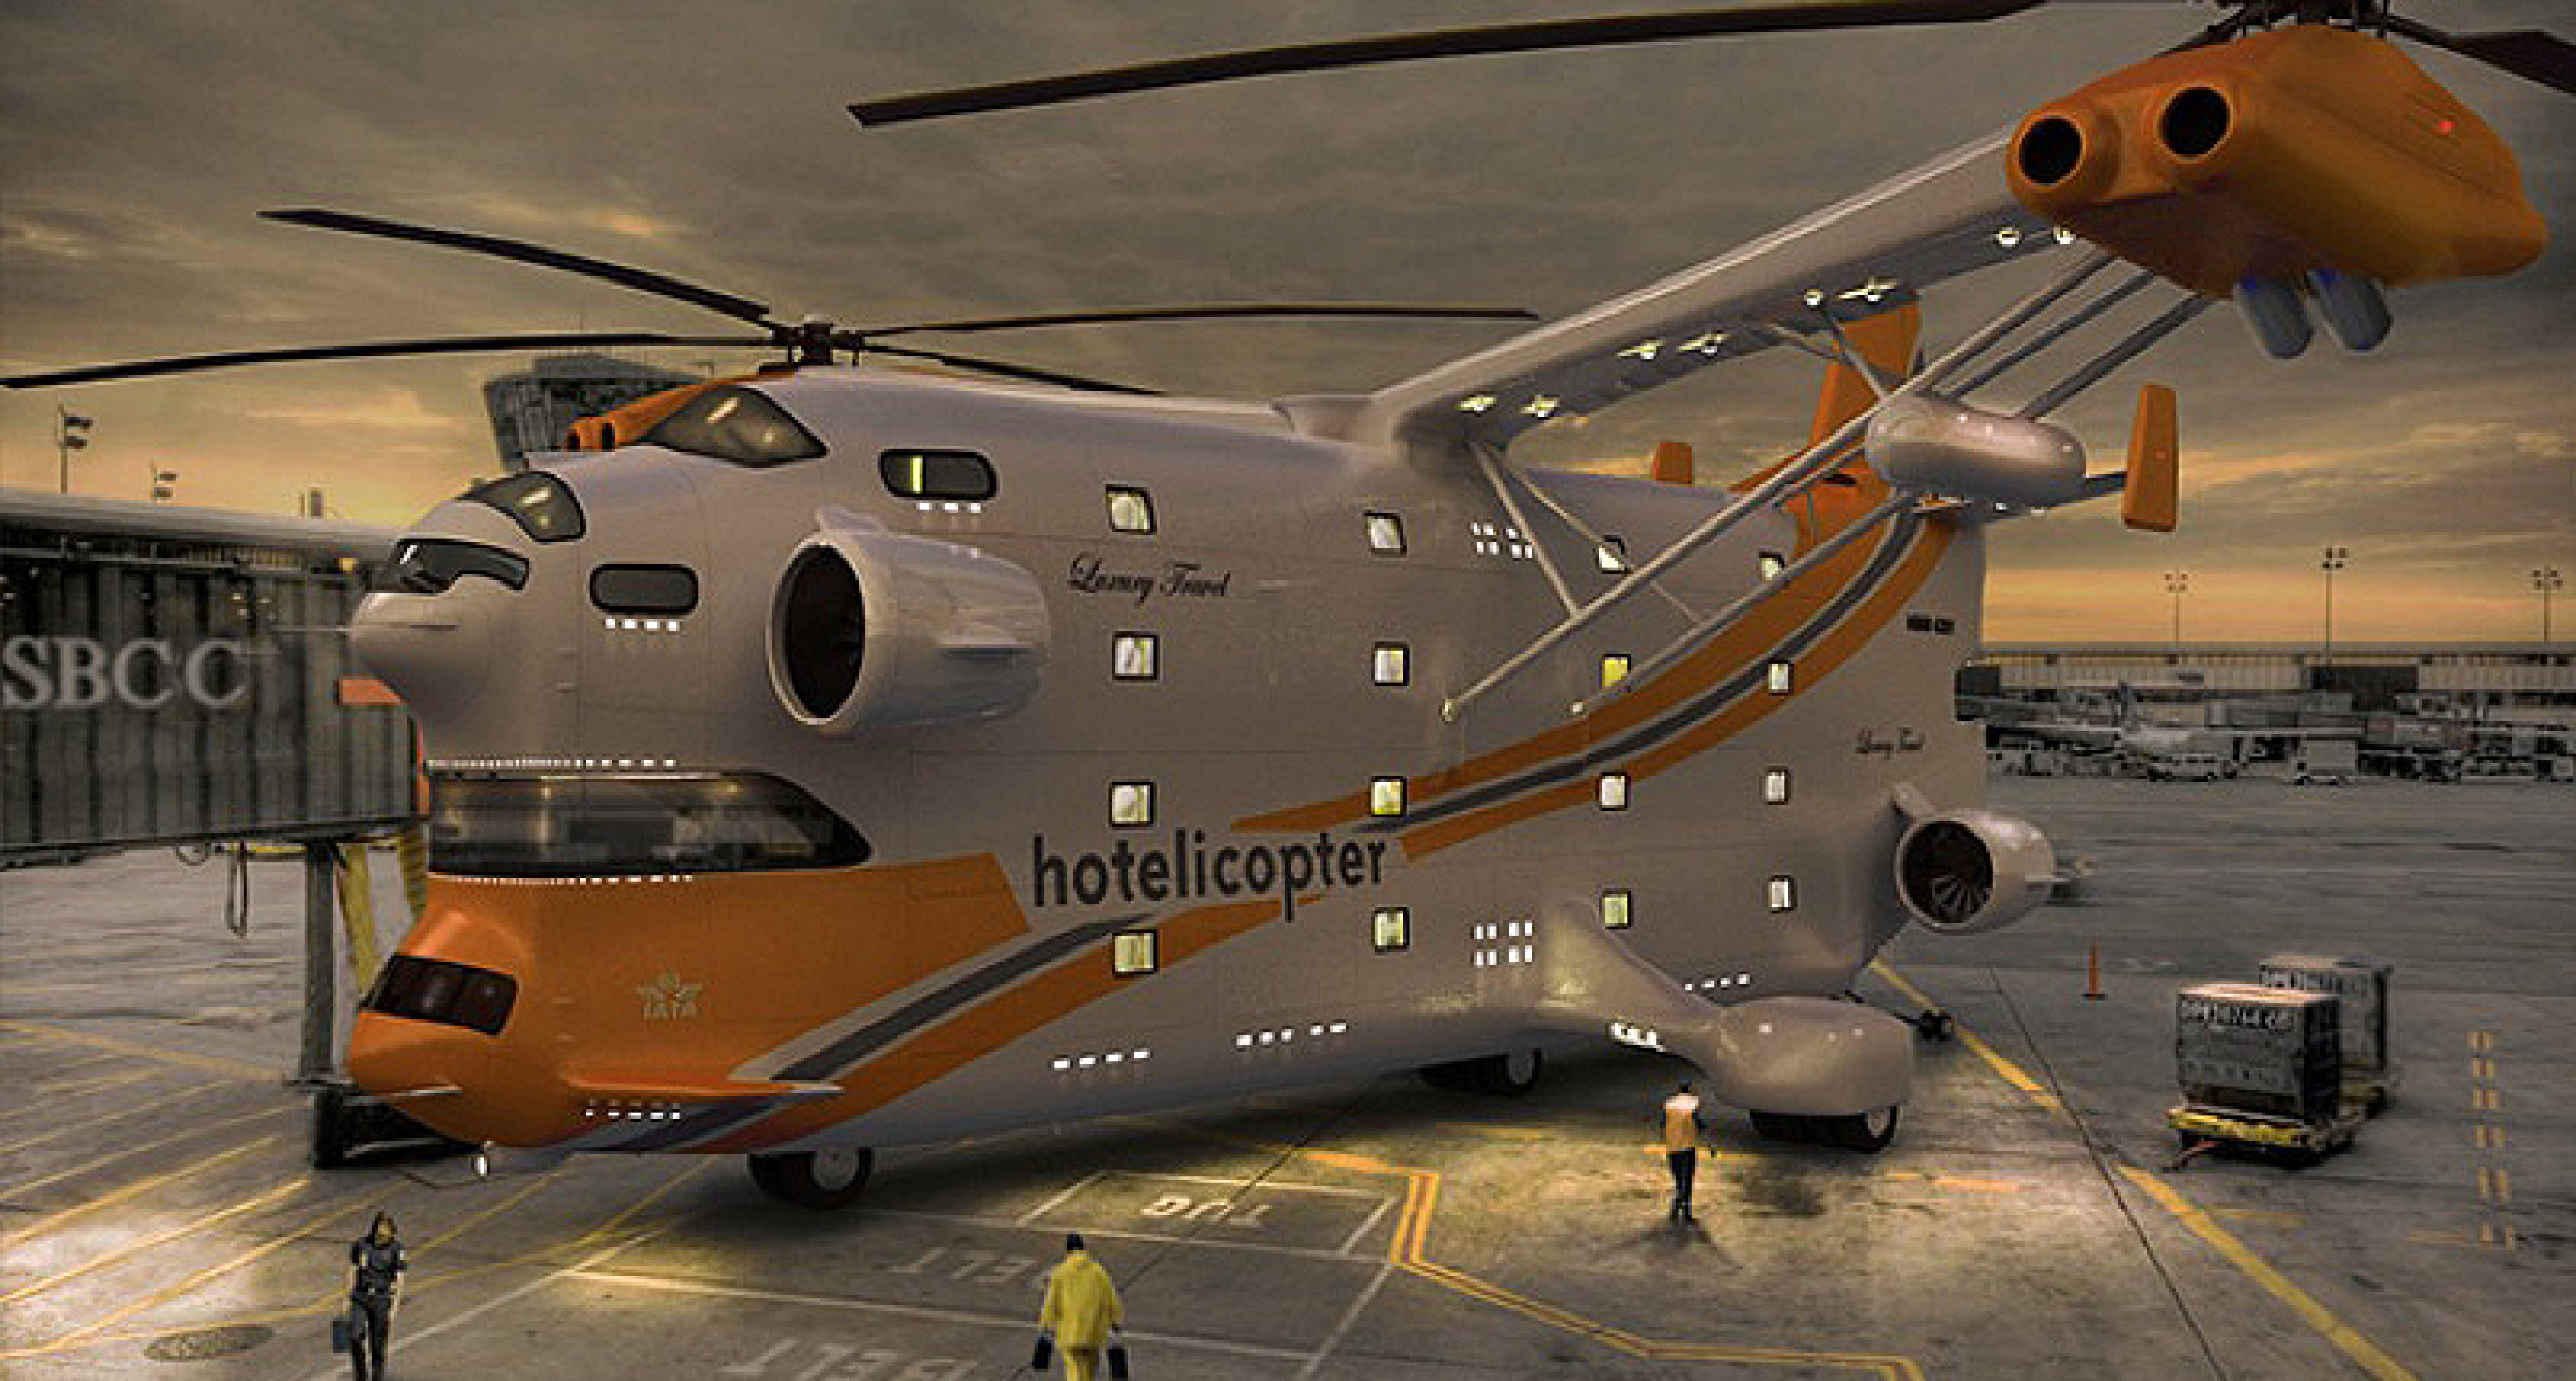 The Hotelicopter: Heavy Rotation